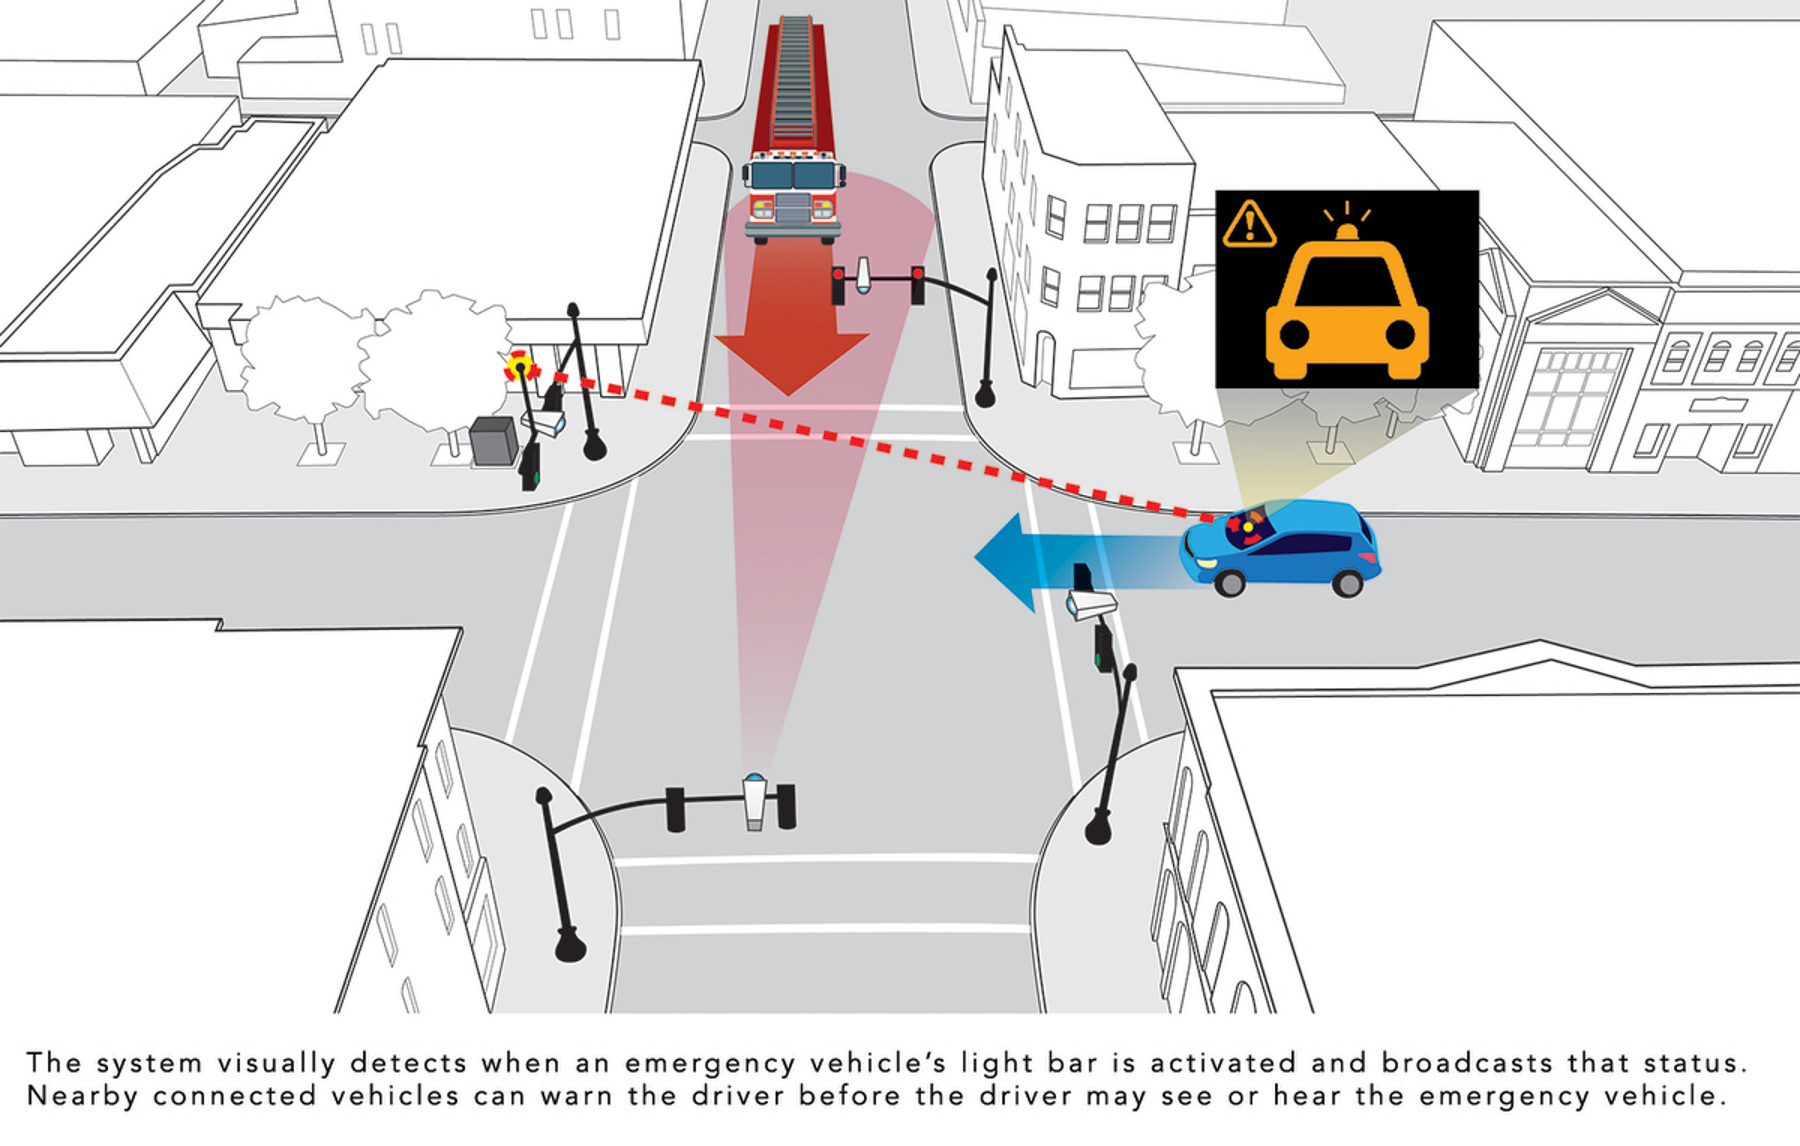 Honda ìSmart Intersectionî technology for vehicle-to-everything (V2X) communication is designed to reduce traffic collisions at roadway intersections.